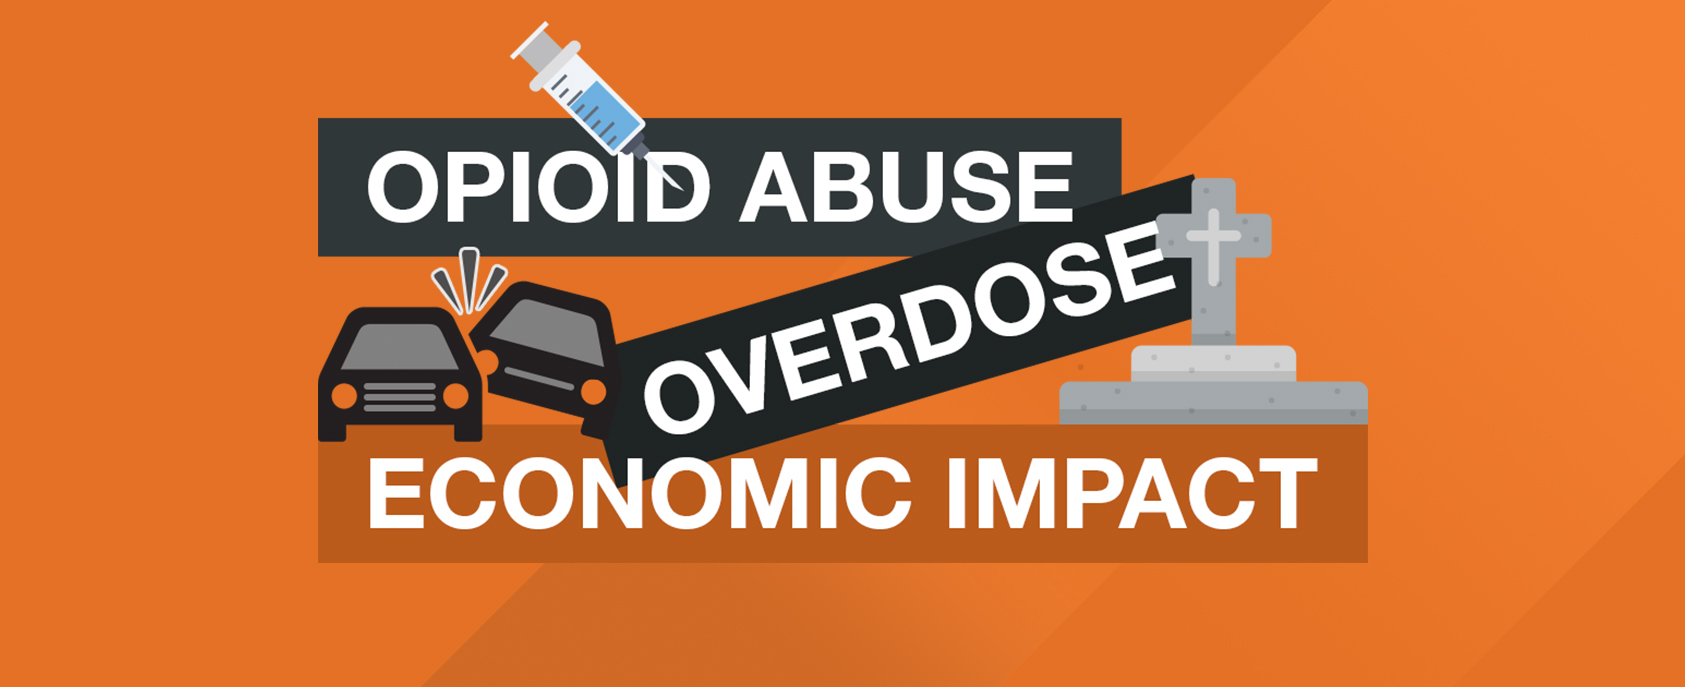 Opioid Abuse Economic Impact Graphic Showing Needle, Grave and Car Crash